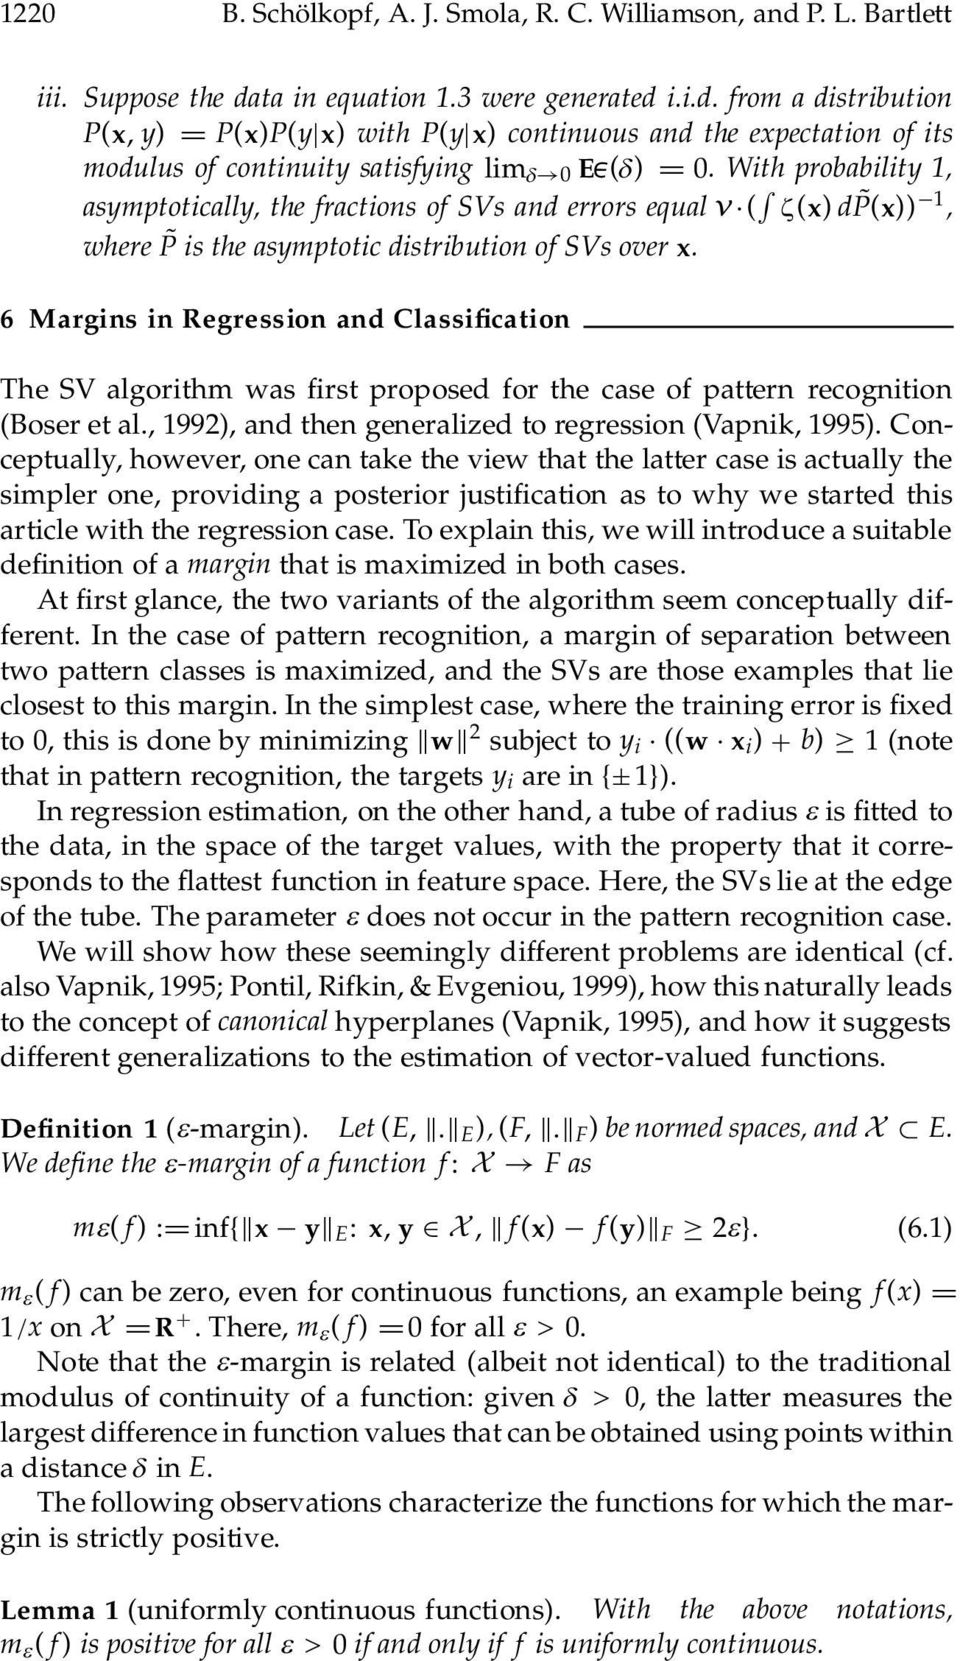 6 Margins in Regression and Classi cation The SV algorithm was rst proposed for the case of pattern recognition (Boser et al., 1992), and then generalized to regression (Vapnik, 1995).